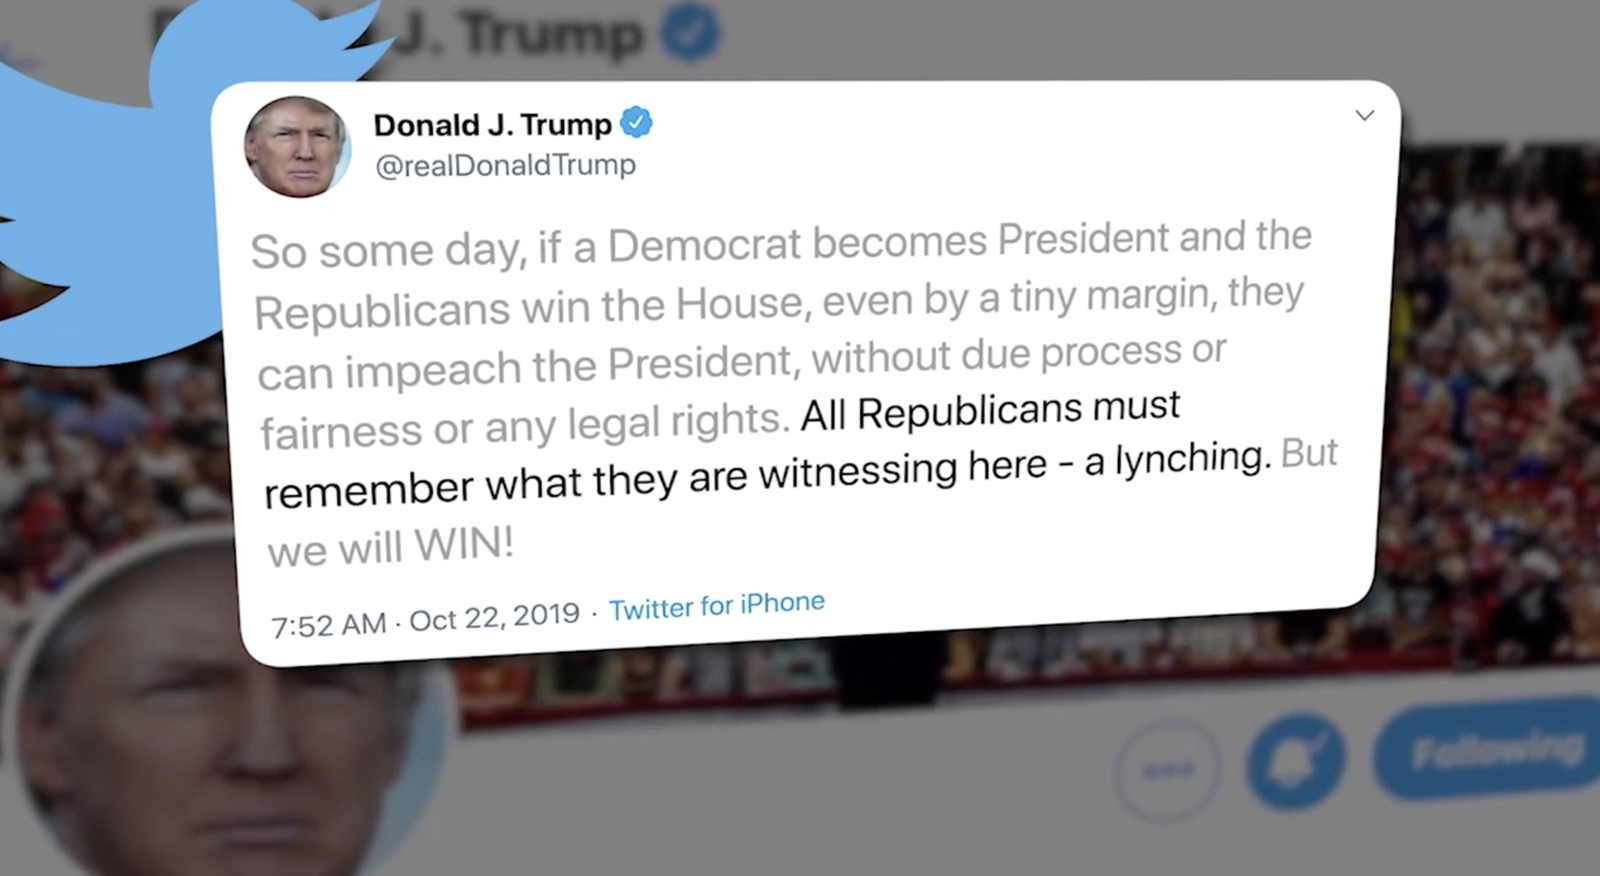 "President Donald Trump tweeted, ""So some day, if a Democrat becomes President and the Republicans win the House, even by a tiny margin, they can impeach the President, without due process or fairness or any legal rights. All Republicans must remember what they are witnessing here - a lynching. But we will WIN!"" on Oct. 22, 2019. (Photo: Sinclair Broadcast Group)"